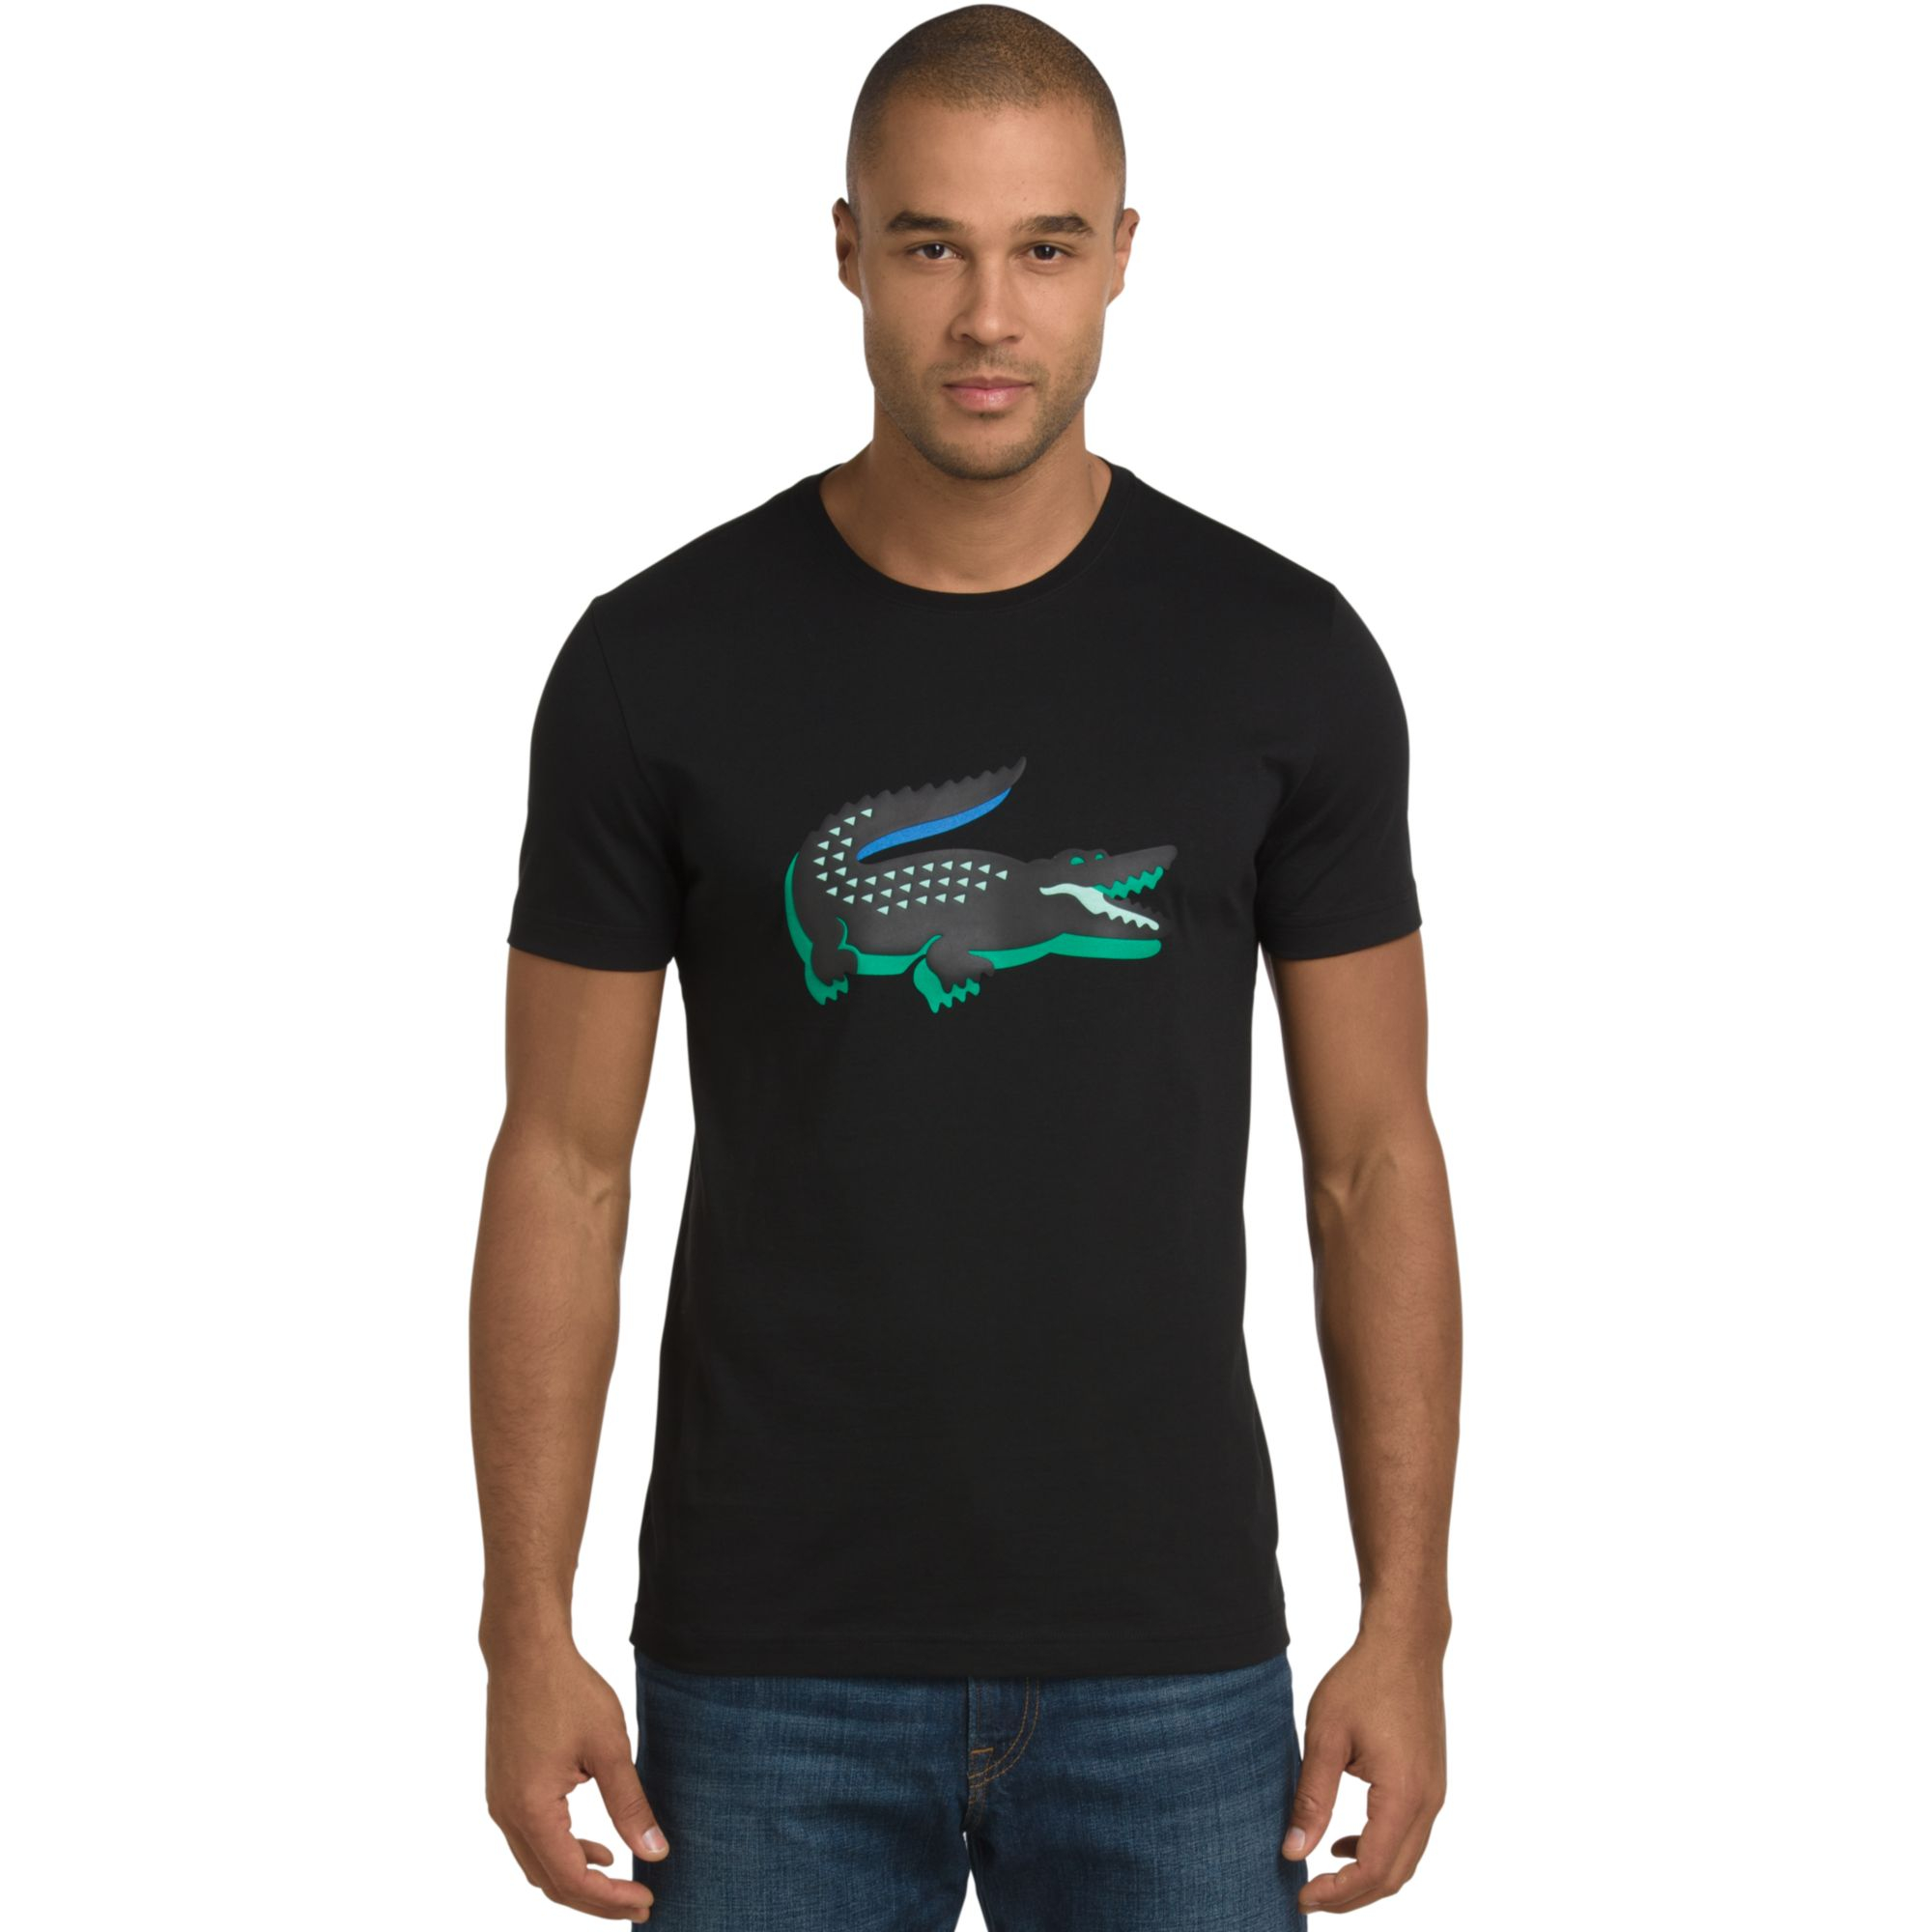 f0dd8407aee35 Lyst - Lacoste 3d Rubber Crocodile Graphic T-Shirt in Green for Men